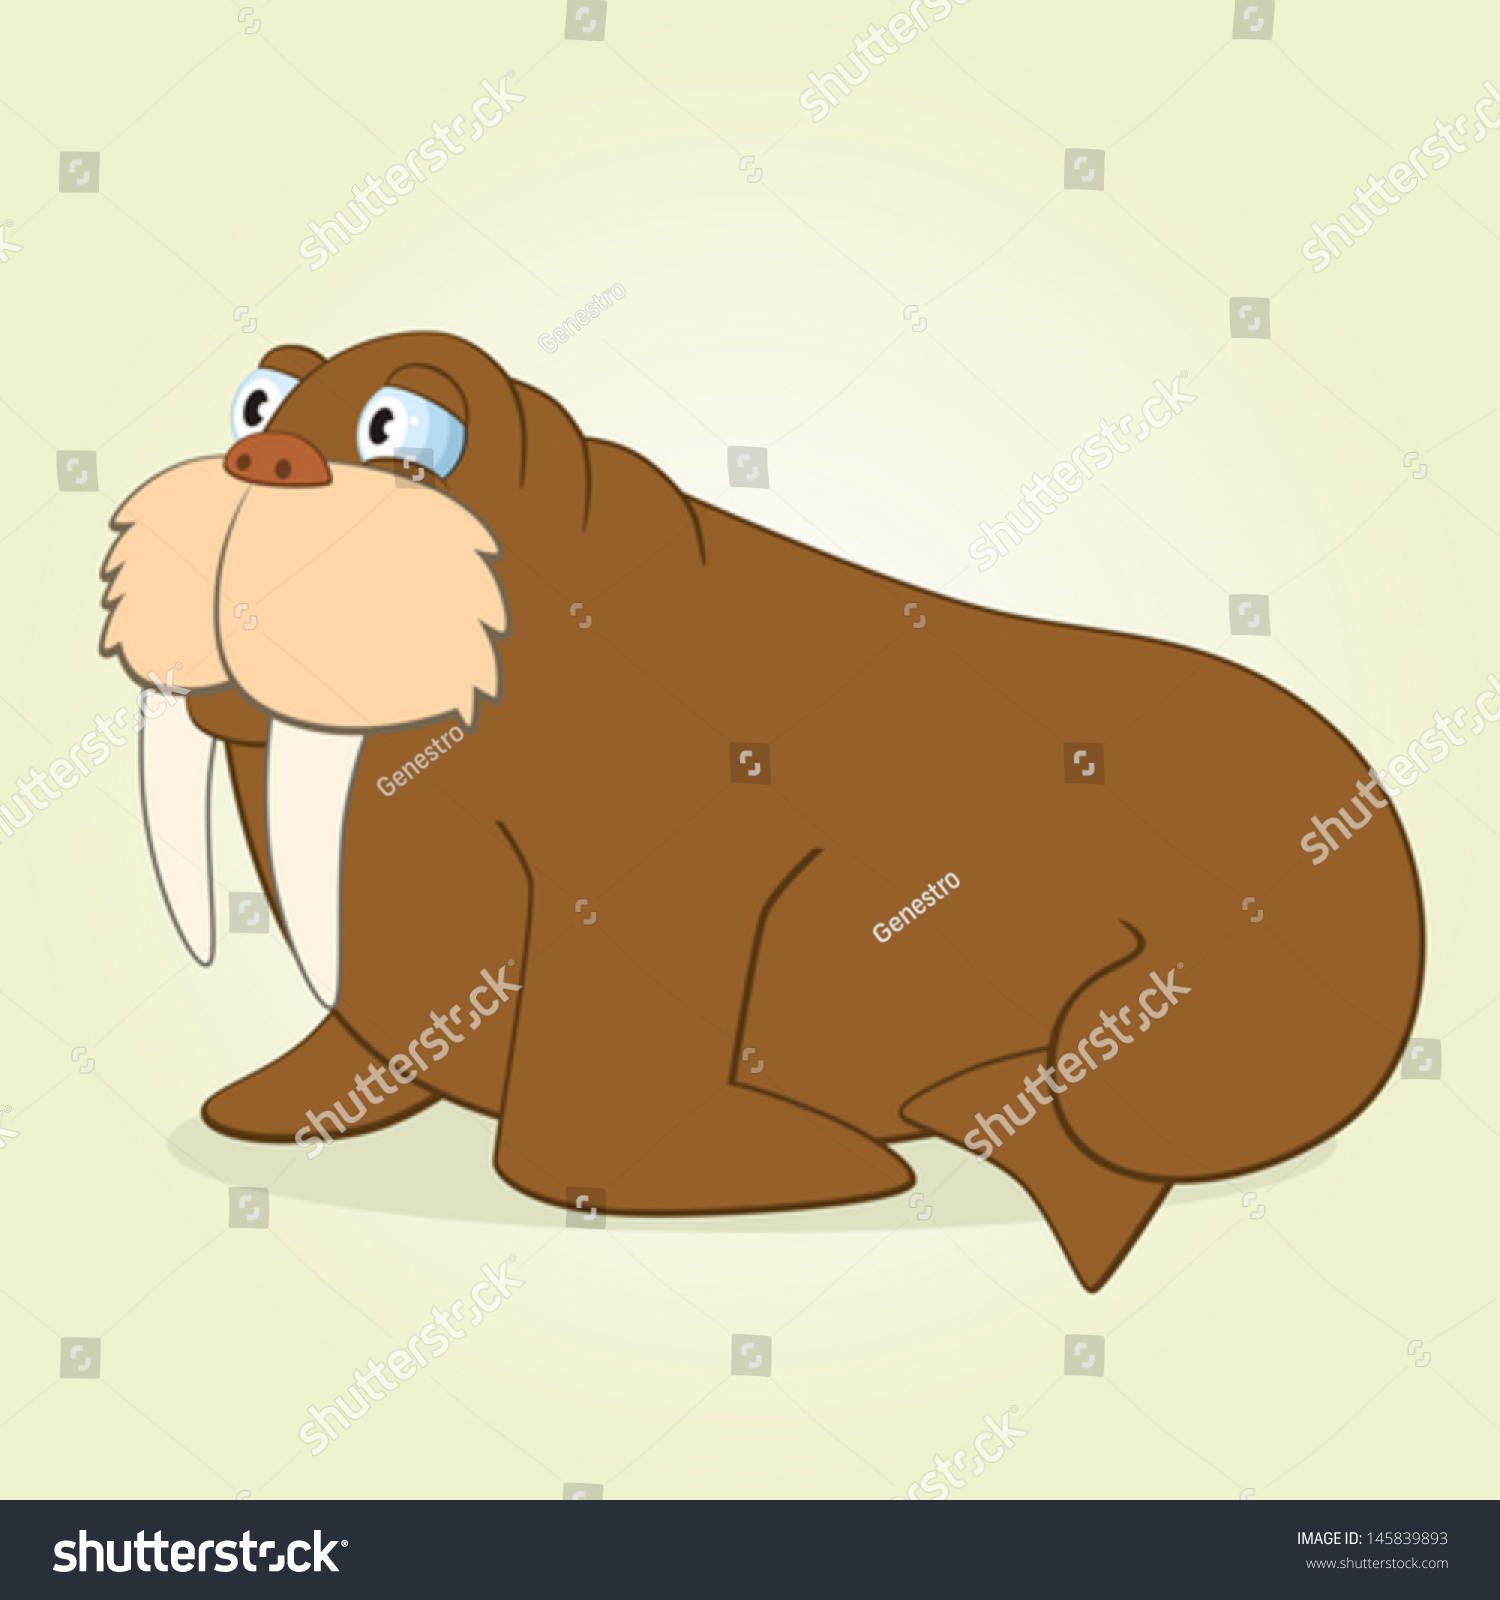 vector illustration cartoon walrus stock vector 145839893